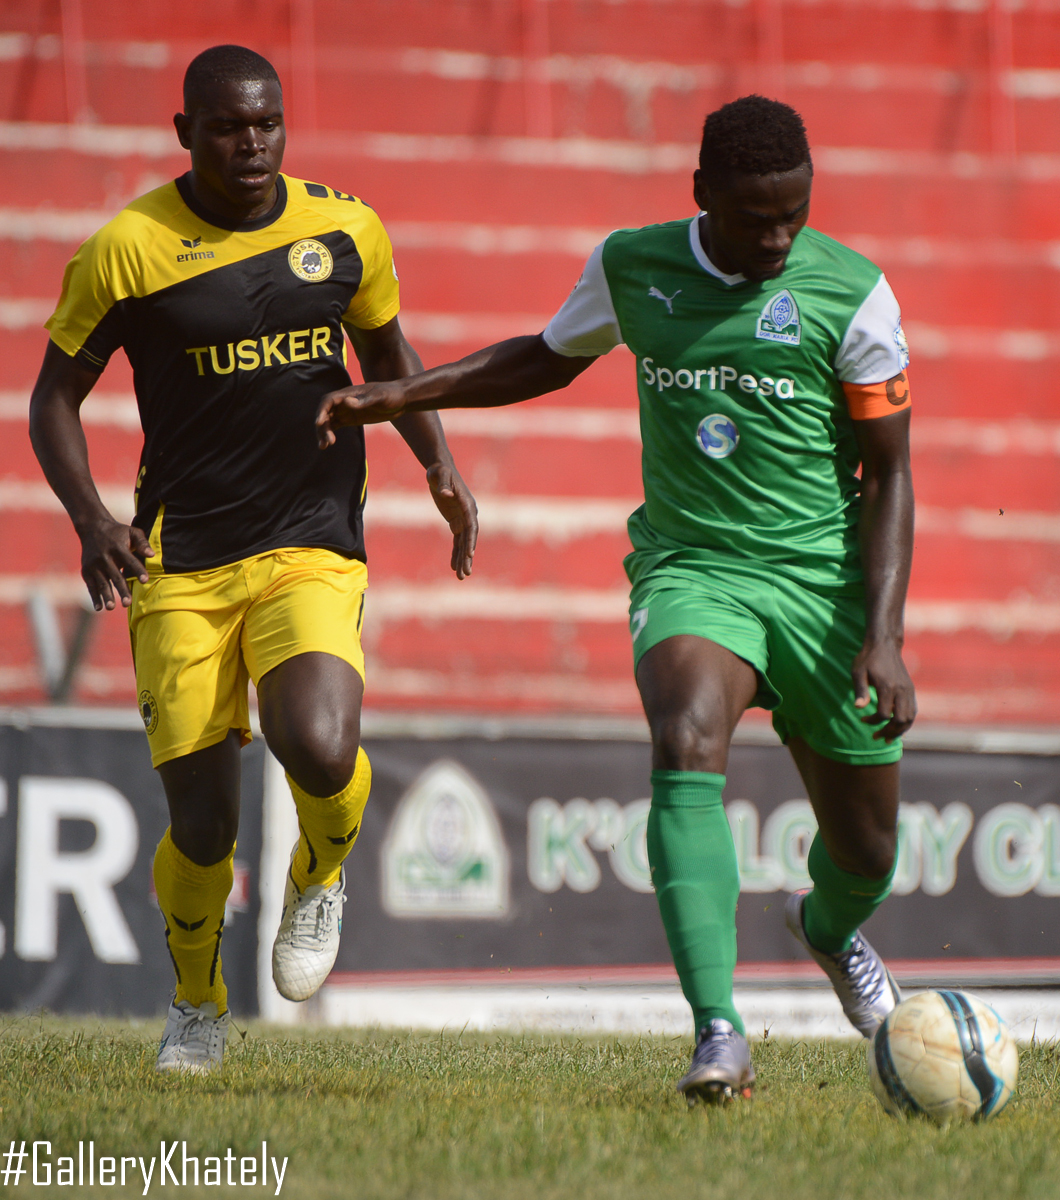 Tusker FC be the bosses of the Sportpesa Premier League 2016